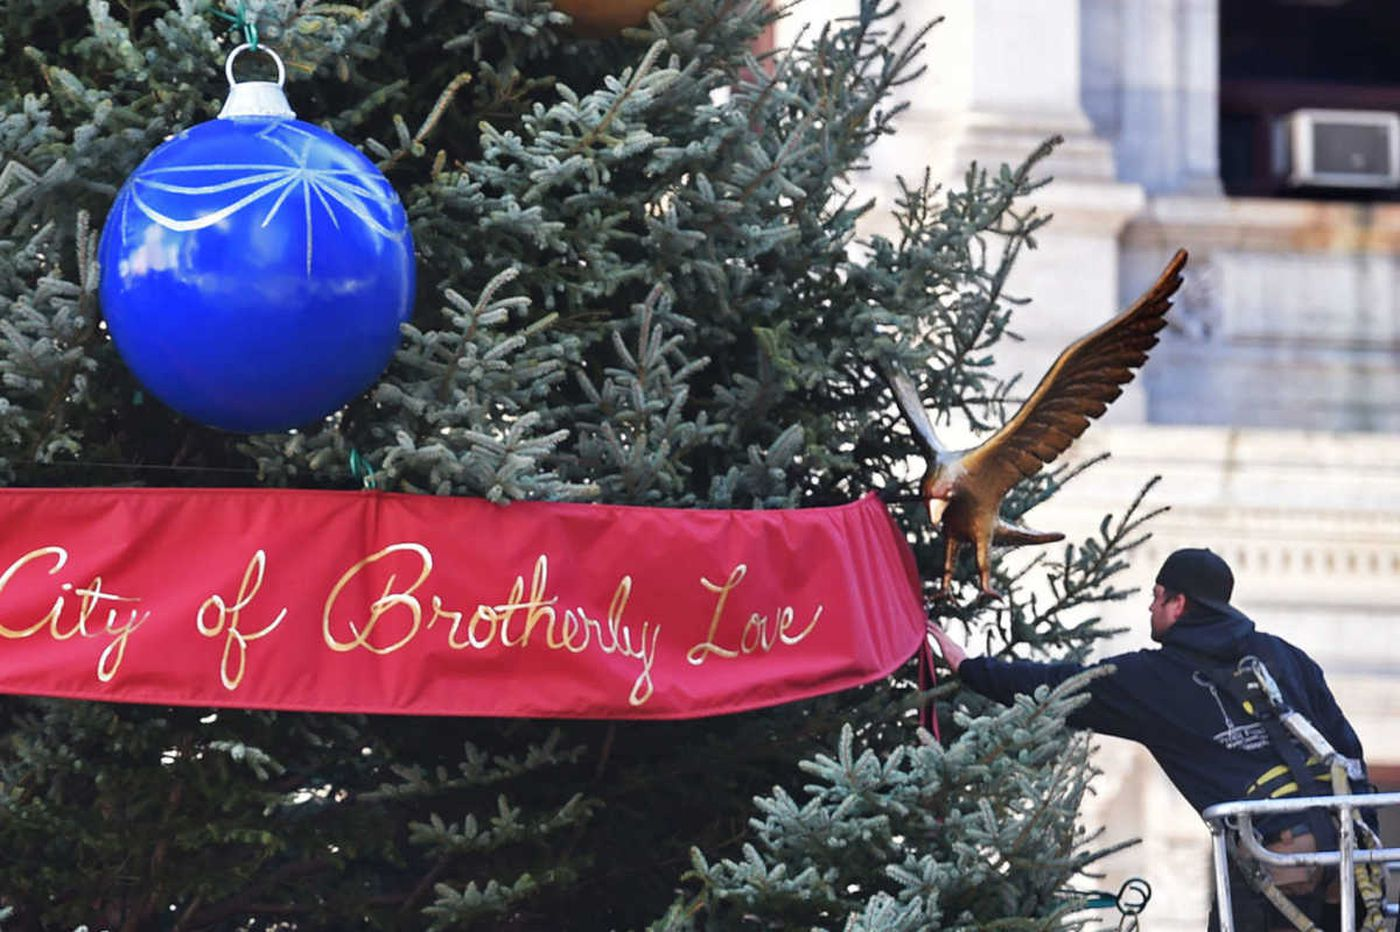 Christmas lights, Santa comes to town 16 other ways to spend your weekend, Nov. 25-27